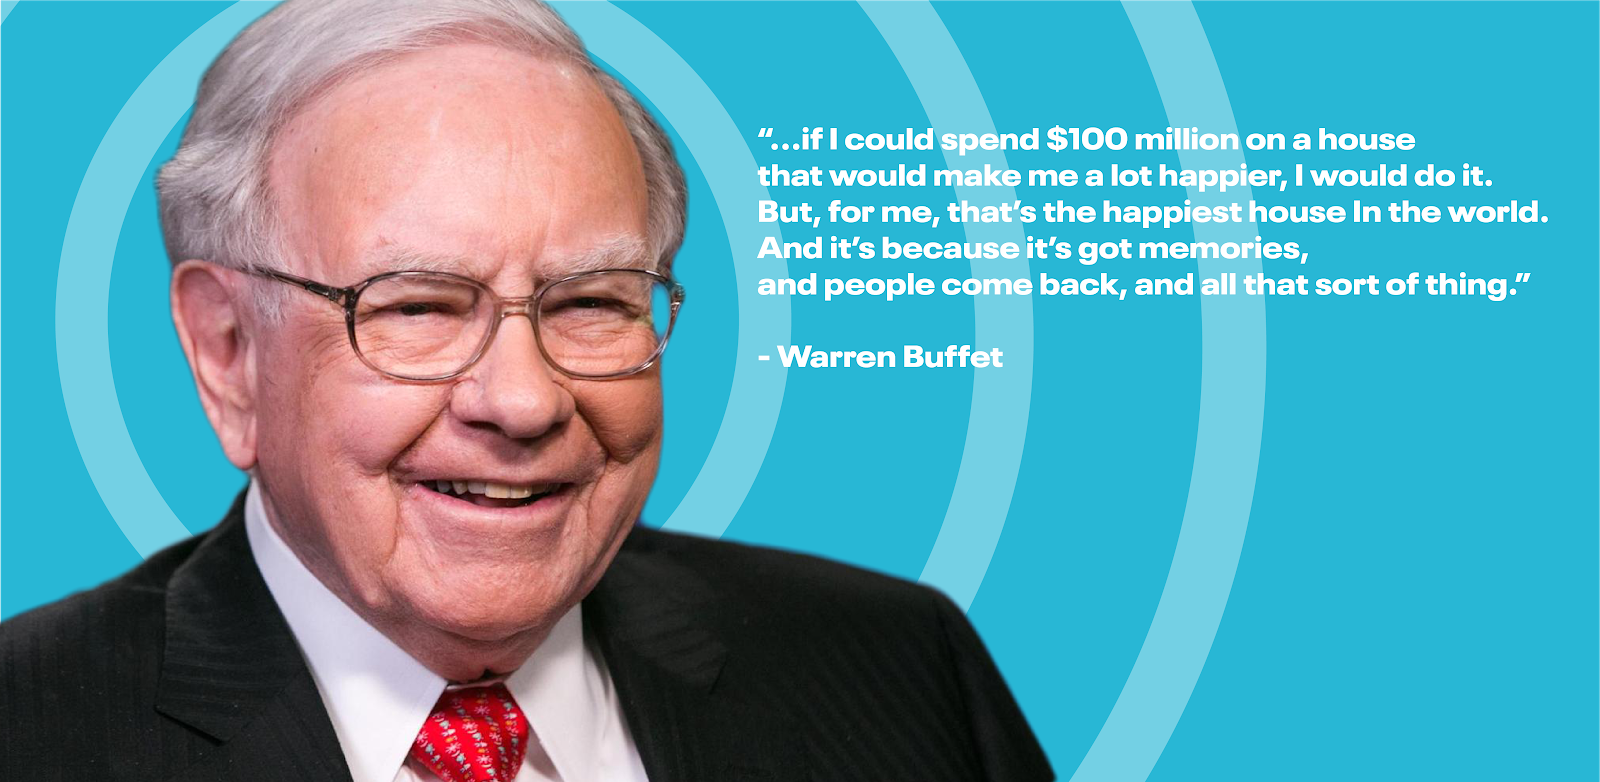 """If I could spend $100 million on a house that would make me a lot happier, I would do it. But, for me, that's the happiest house in the world. And it's because it's got memories, and people come back, and all that sort of thing.""—Warren Buffet"